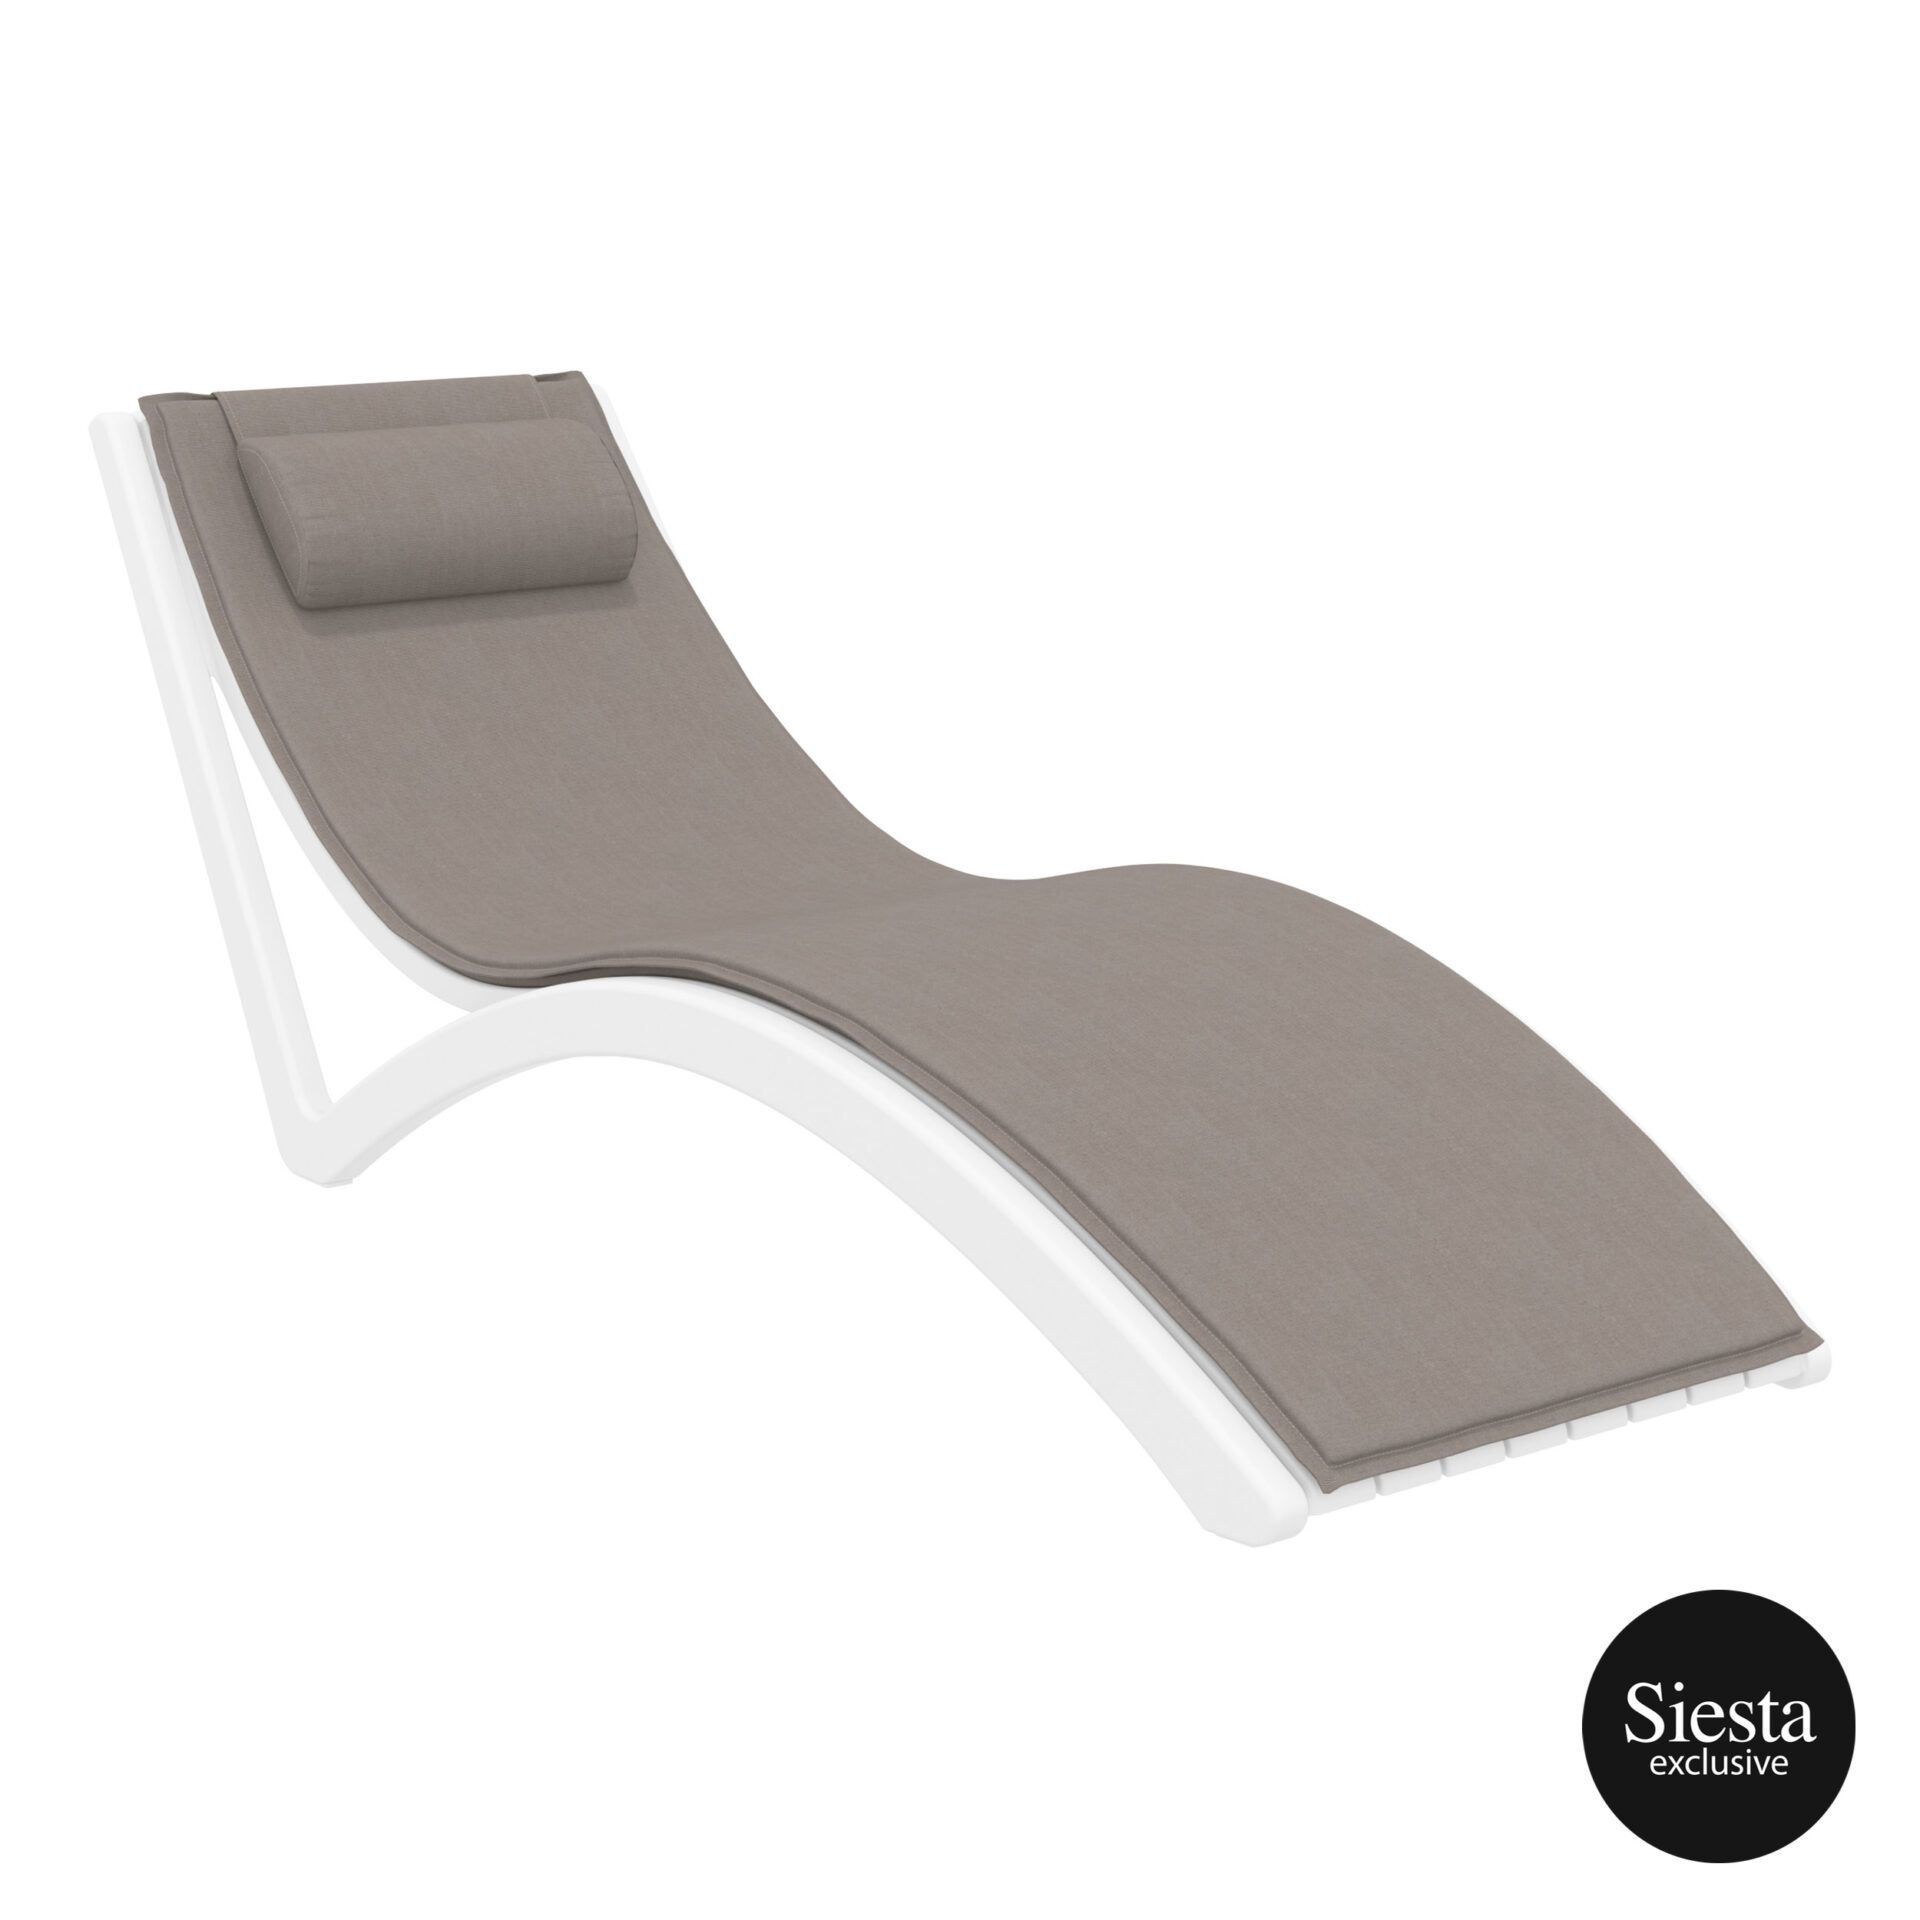 outdoor polypropylene slim sunlounger pillow cushion white brown front side